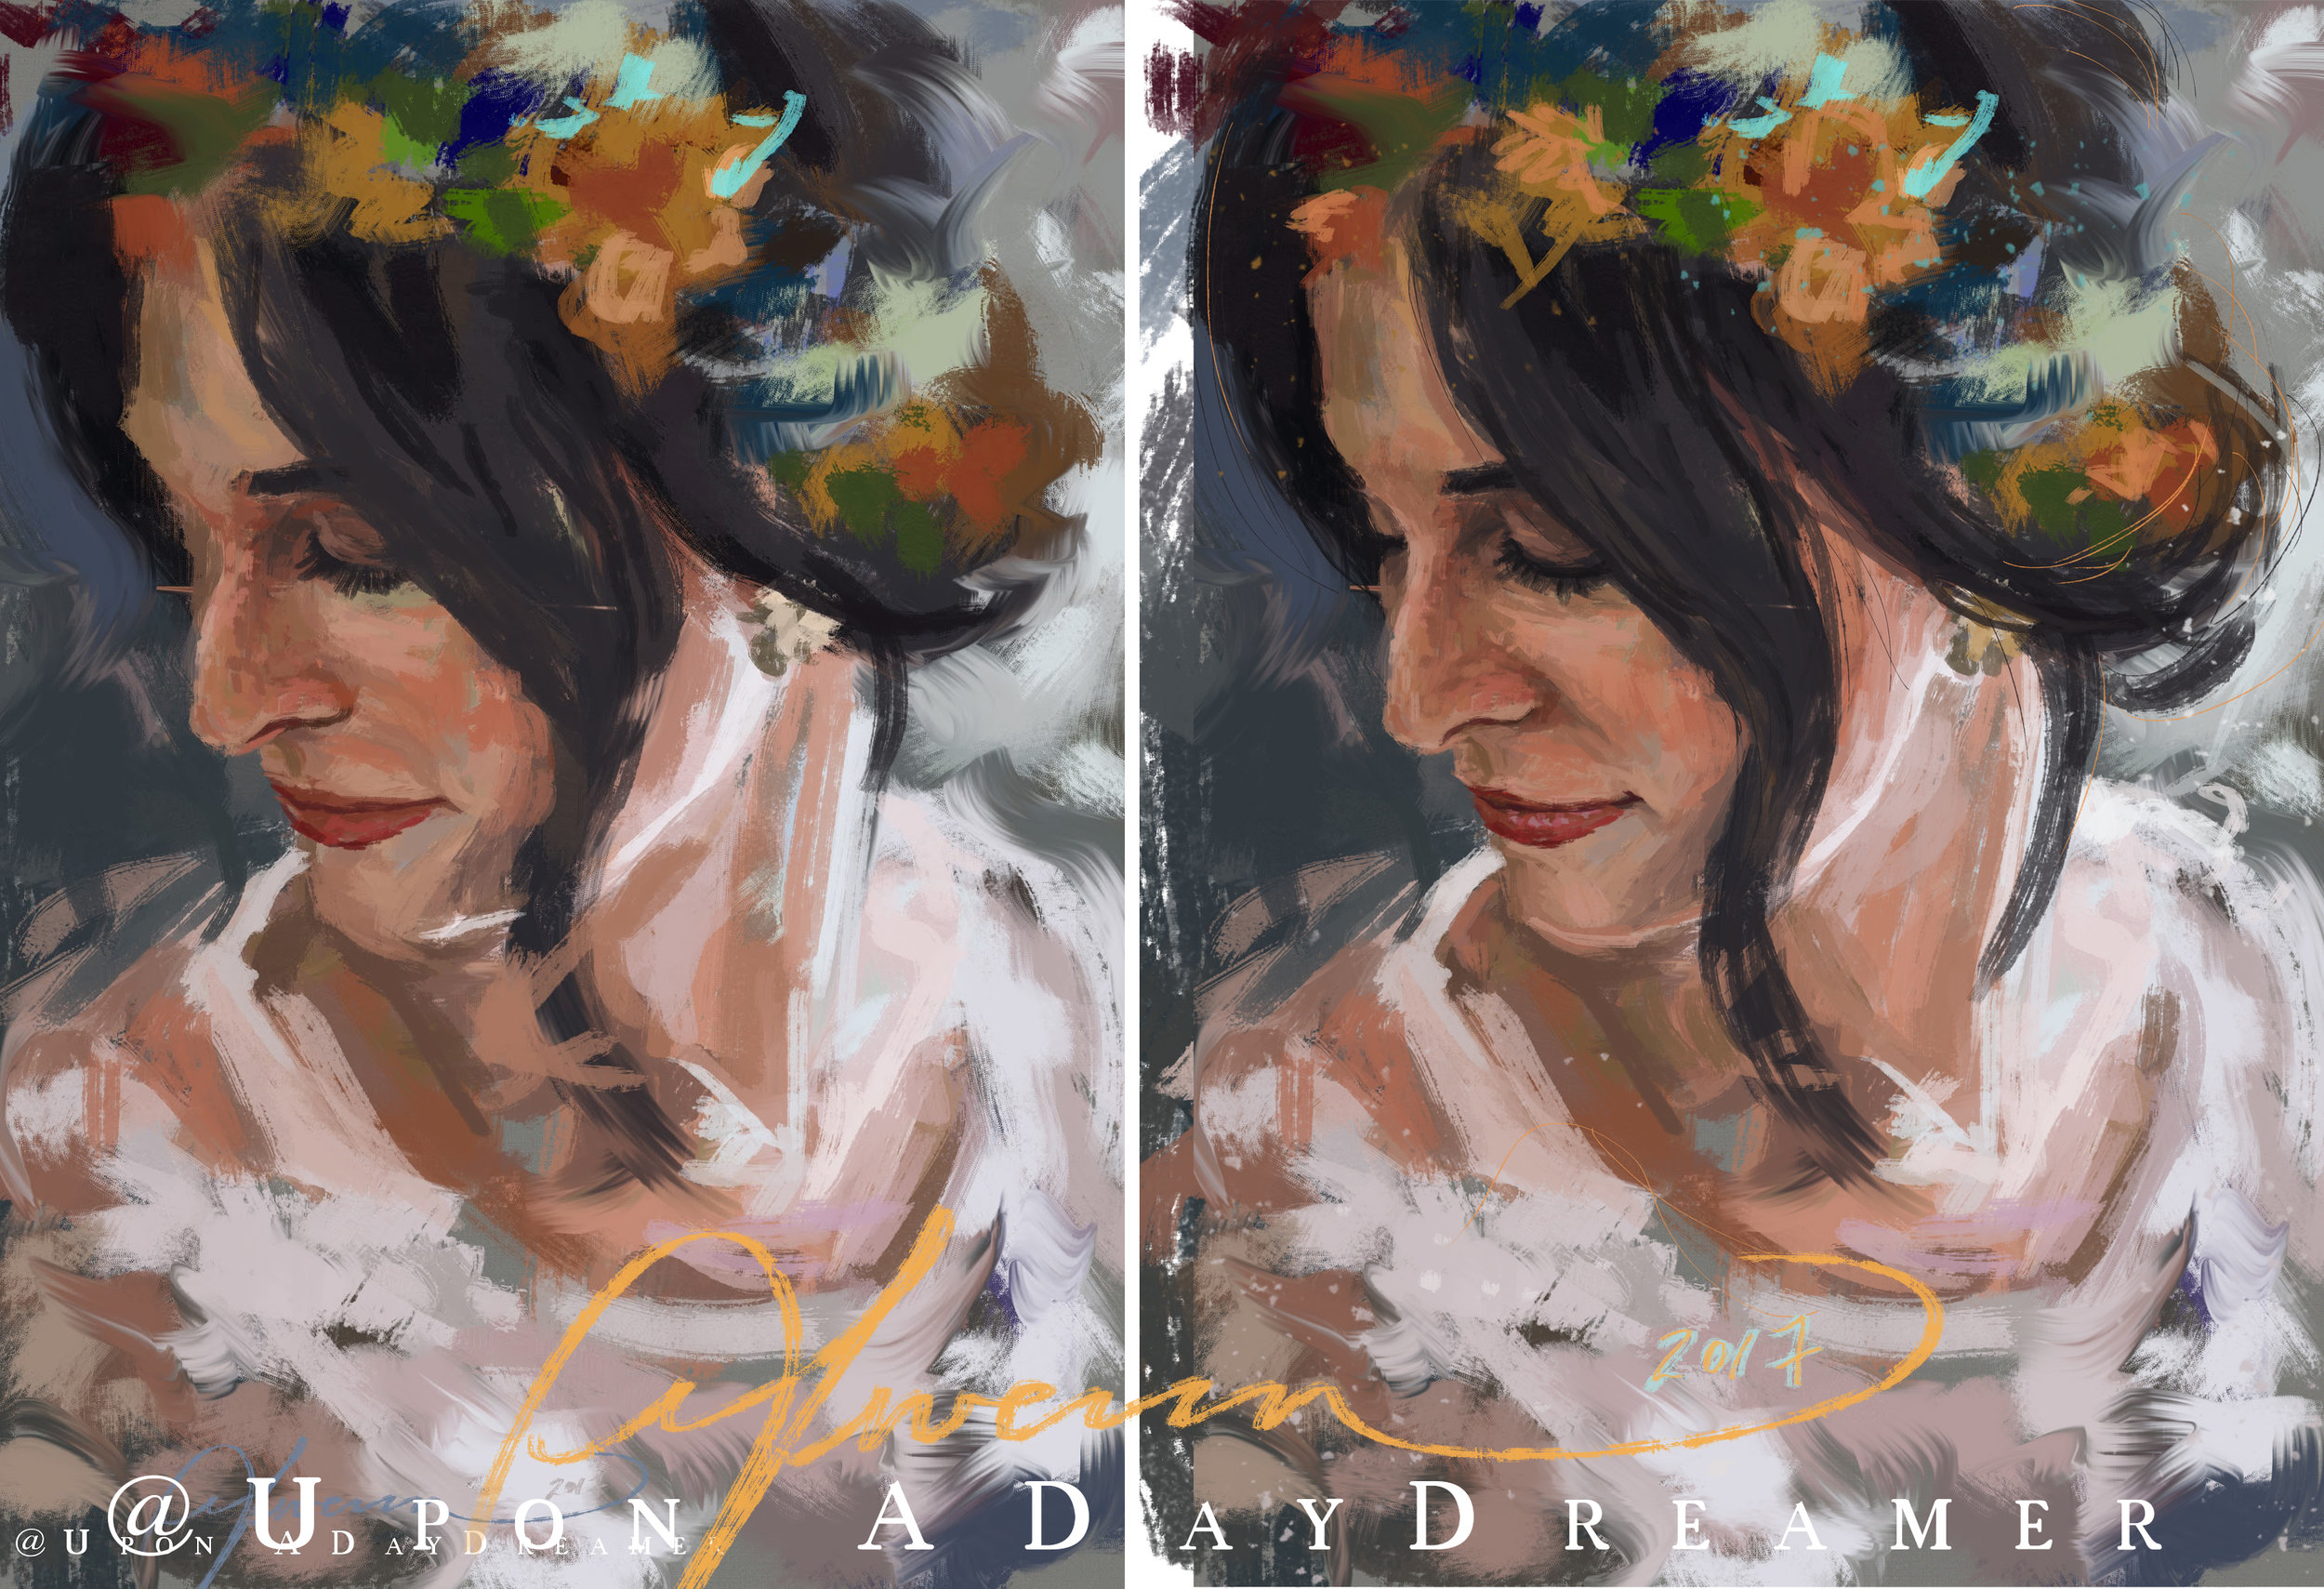 How to add adjustments that make a drawing more masculine or feminine.